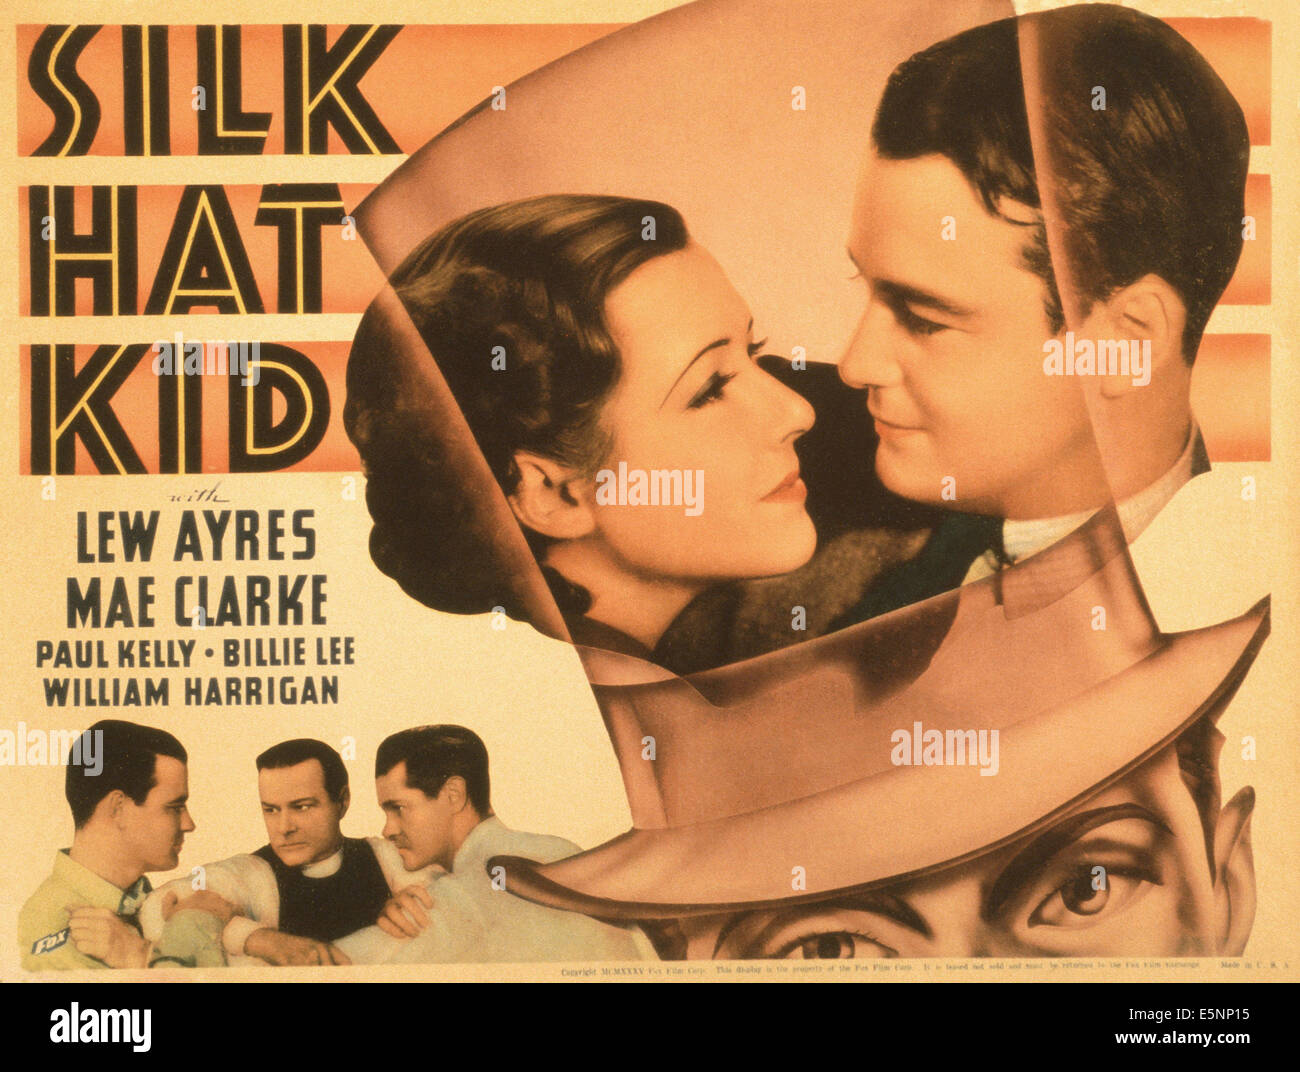 silk-hat-kid-us-poster-from-left-lew-ayr